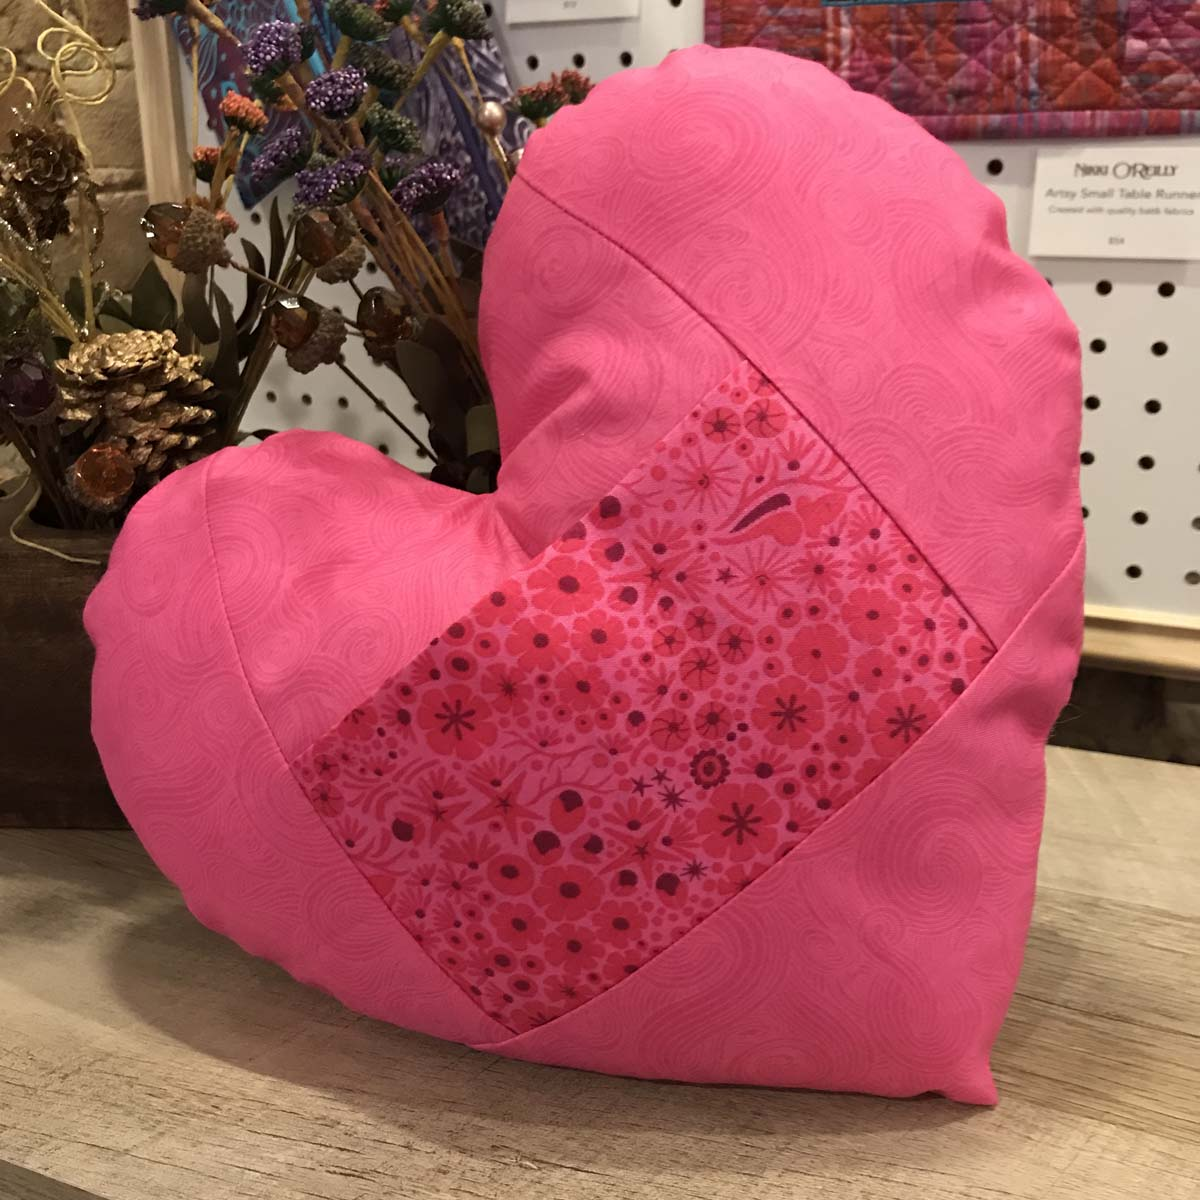 Heart-shaped pink pillow with love note pocket.